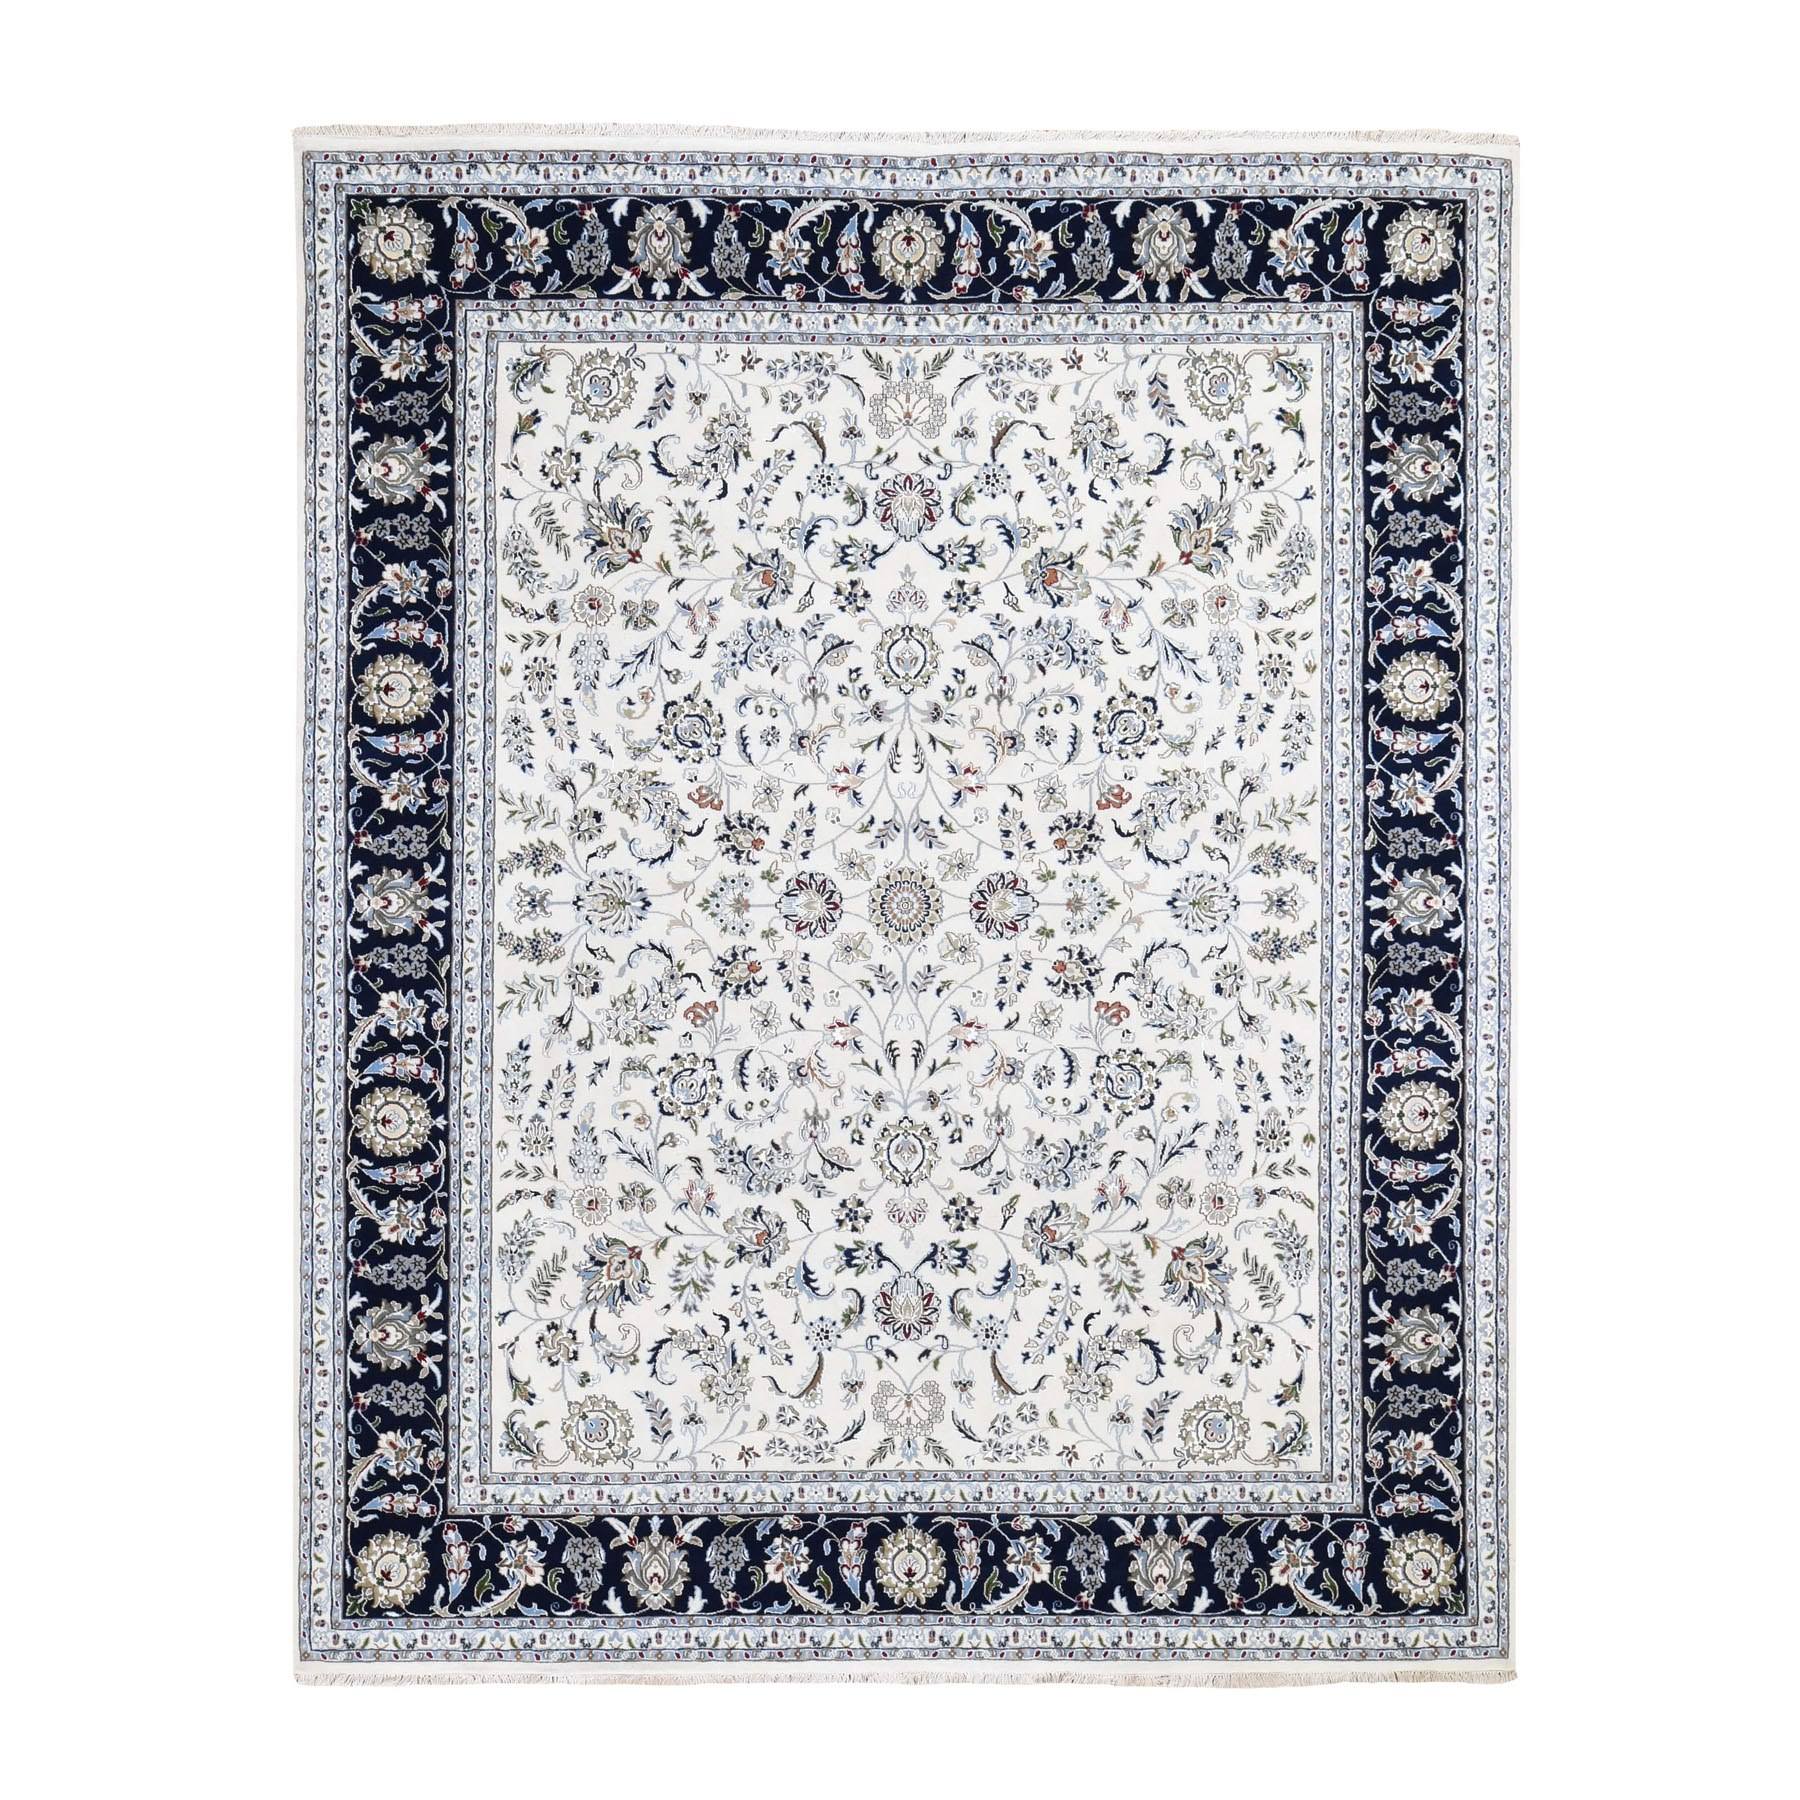 Pirniakan Collection Hand Knotted Ivory Rug No: 0195658